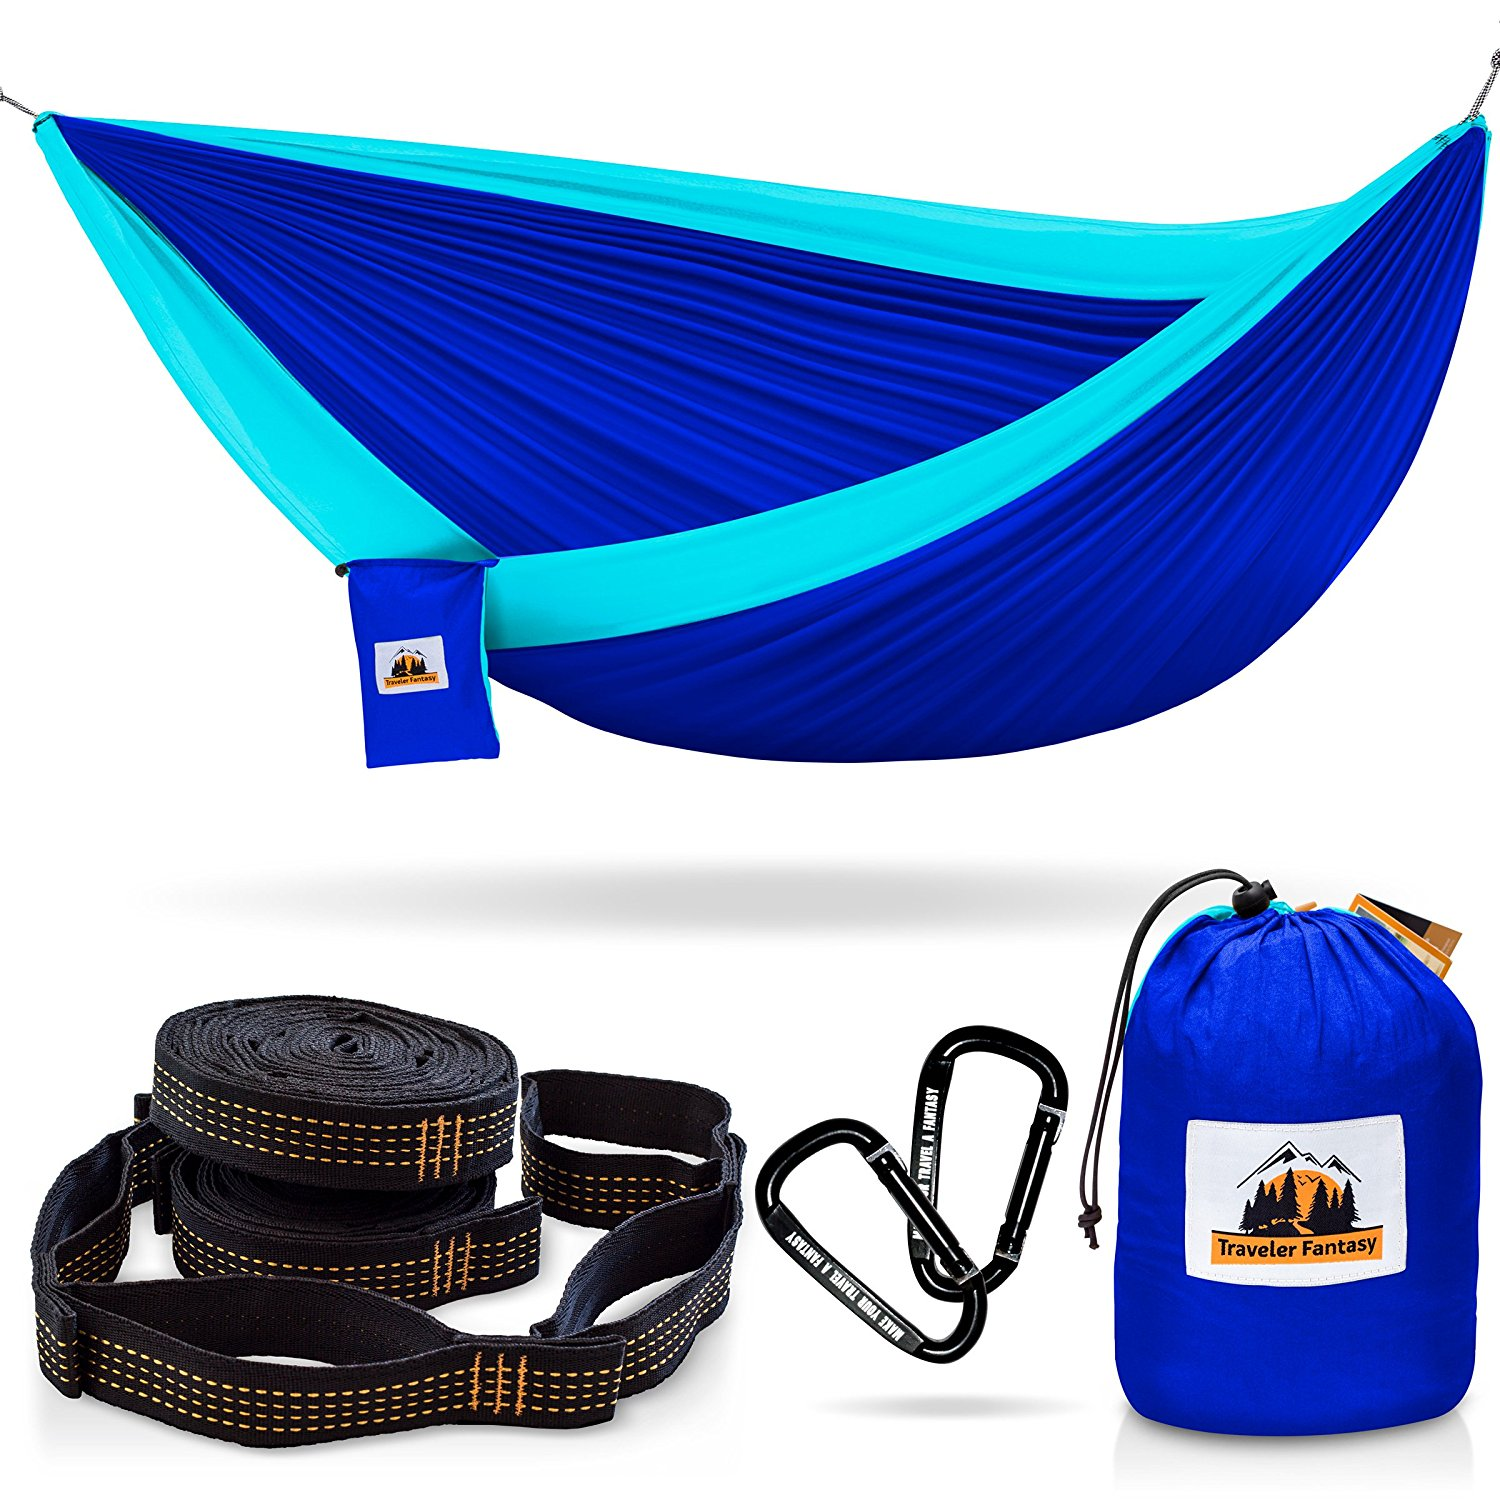 Traveler Fantasy Hammock for Camping Complete Bundle - 70% OFF! - HUGE Sale! Ending Soon!- Top Rated, Portable – Includes: Double Parachute Hammock, 2 Heavy Duty 10' Tree Straps, Carabiners, Gift